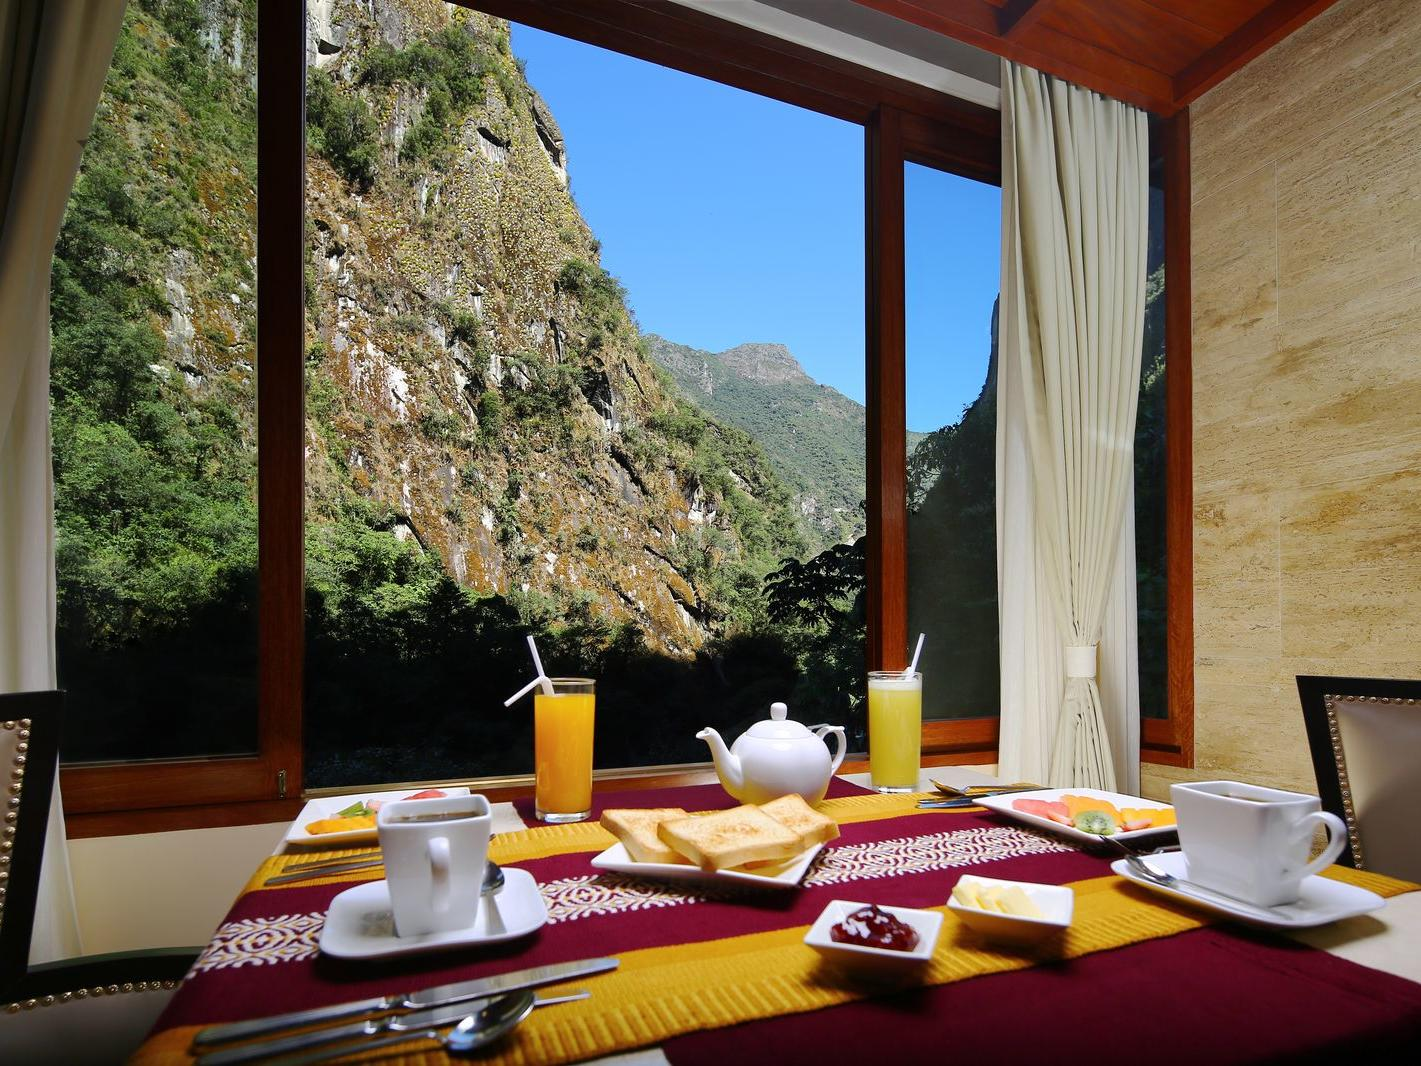 Breakfast table arranged with the mountain view at Hotel Sumaq